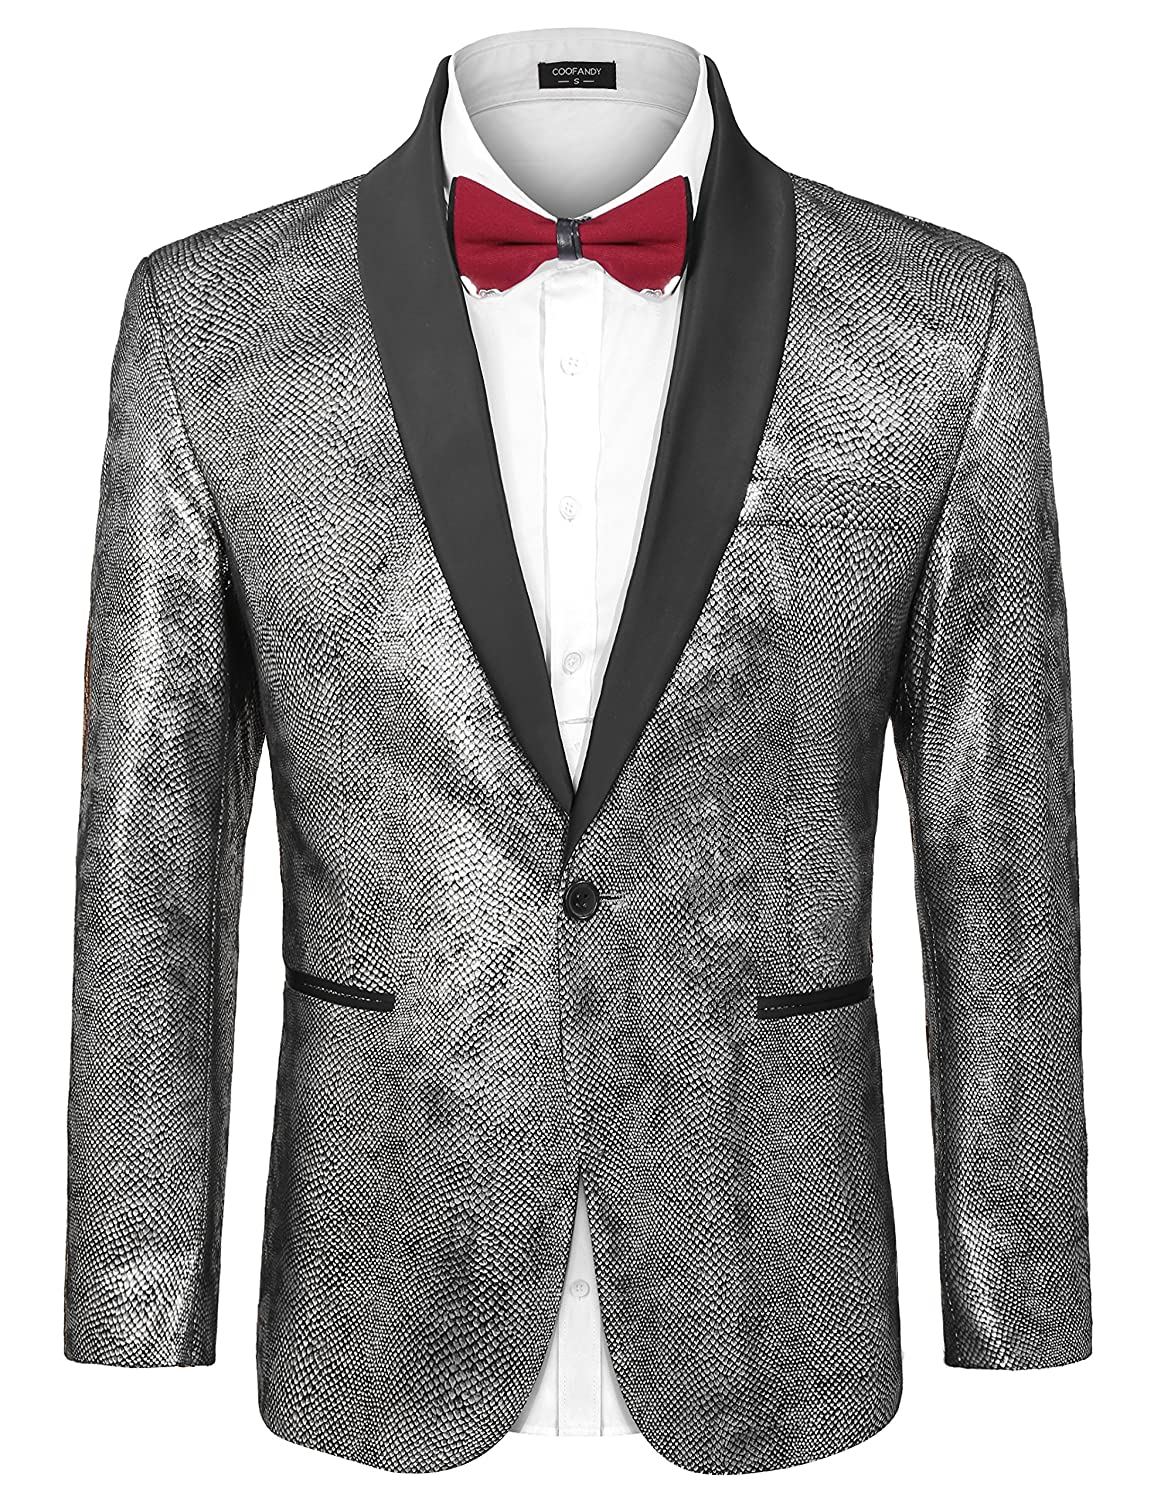 Alion Mens Party Nightclub Patterns Slim Fit Long Sleeve Stylish Button Front Shirts